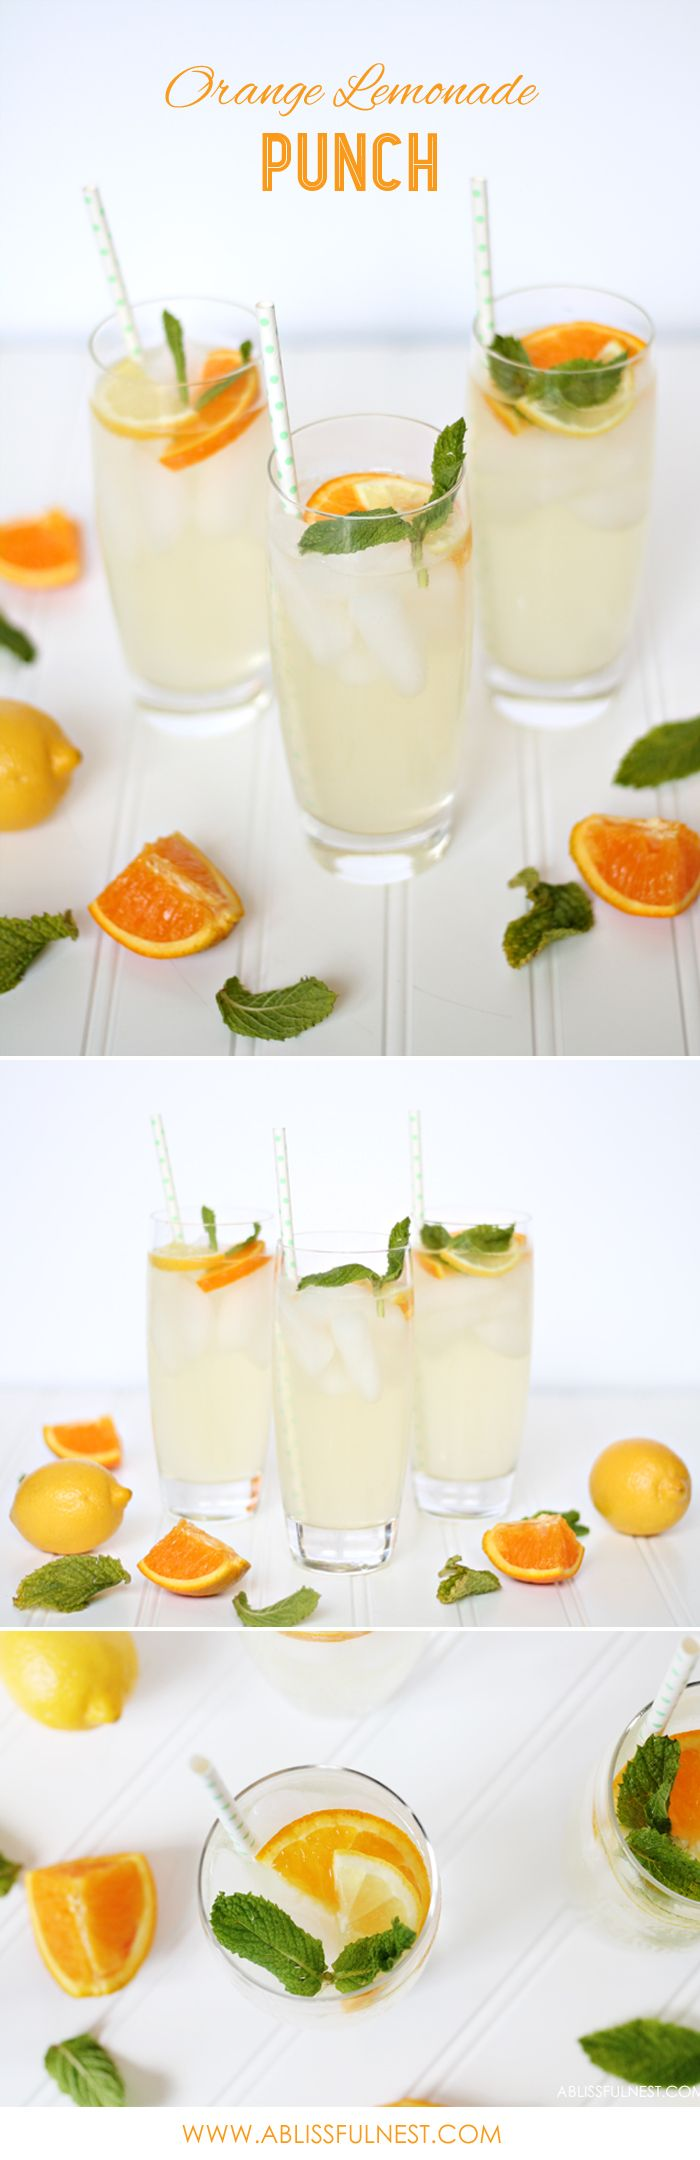 Delicious and Simple Orange Lemonade Punch Recipe. Make a cocktail or mocktail for a perfect summer drink! by A Blissful Nest